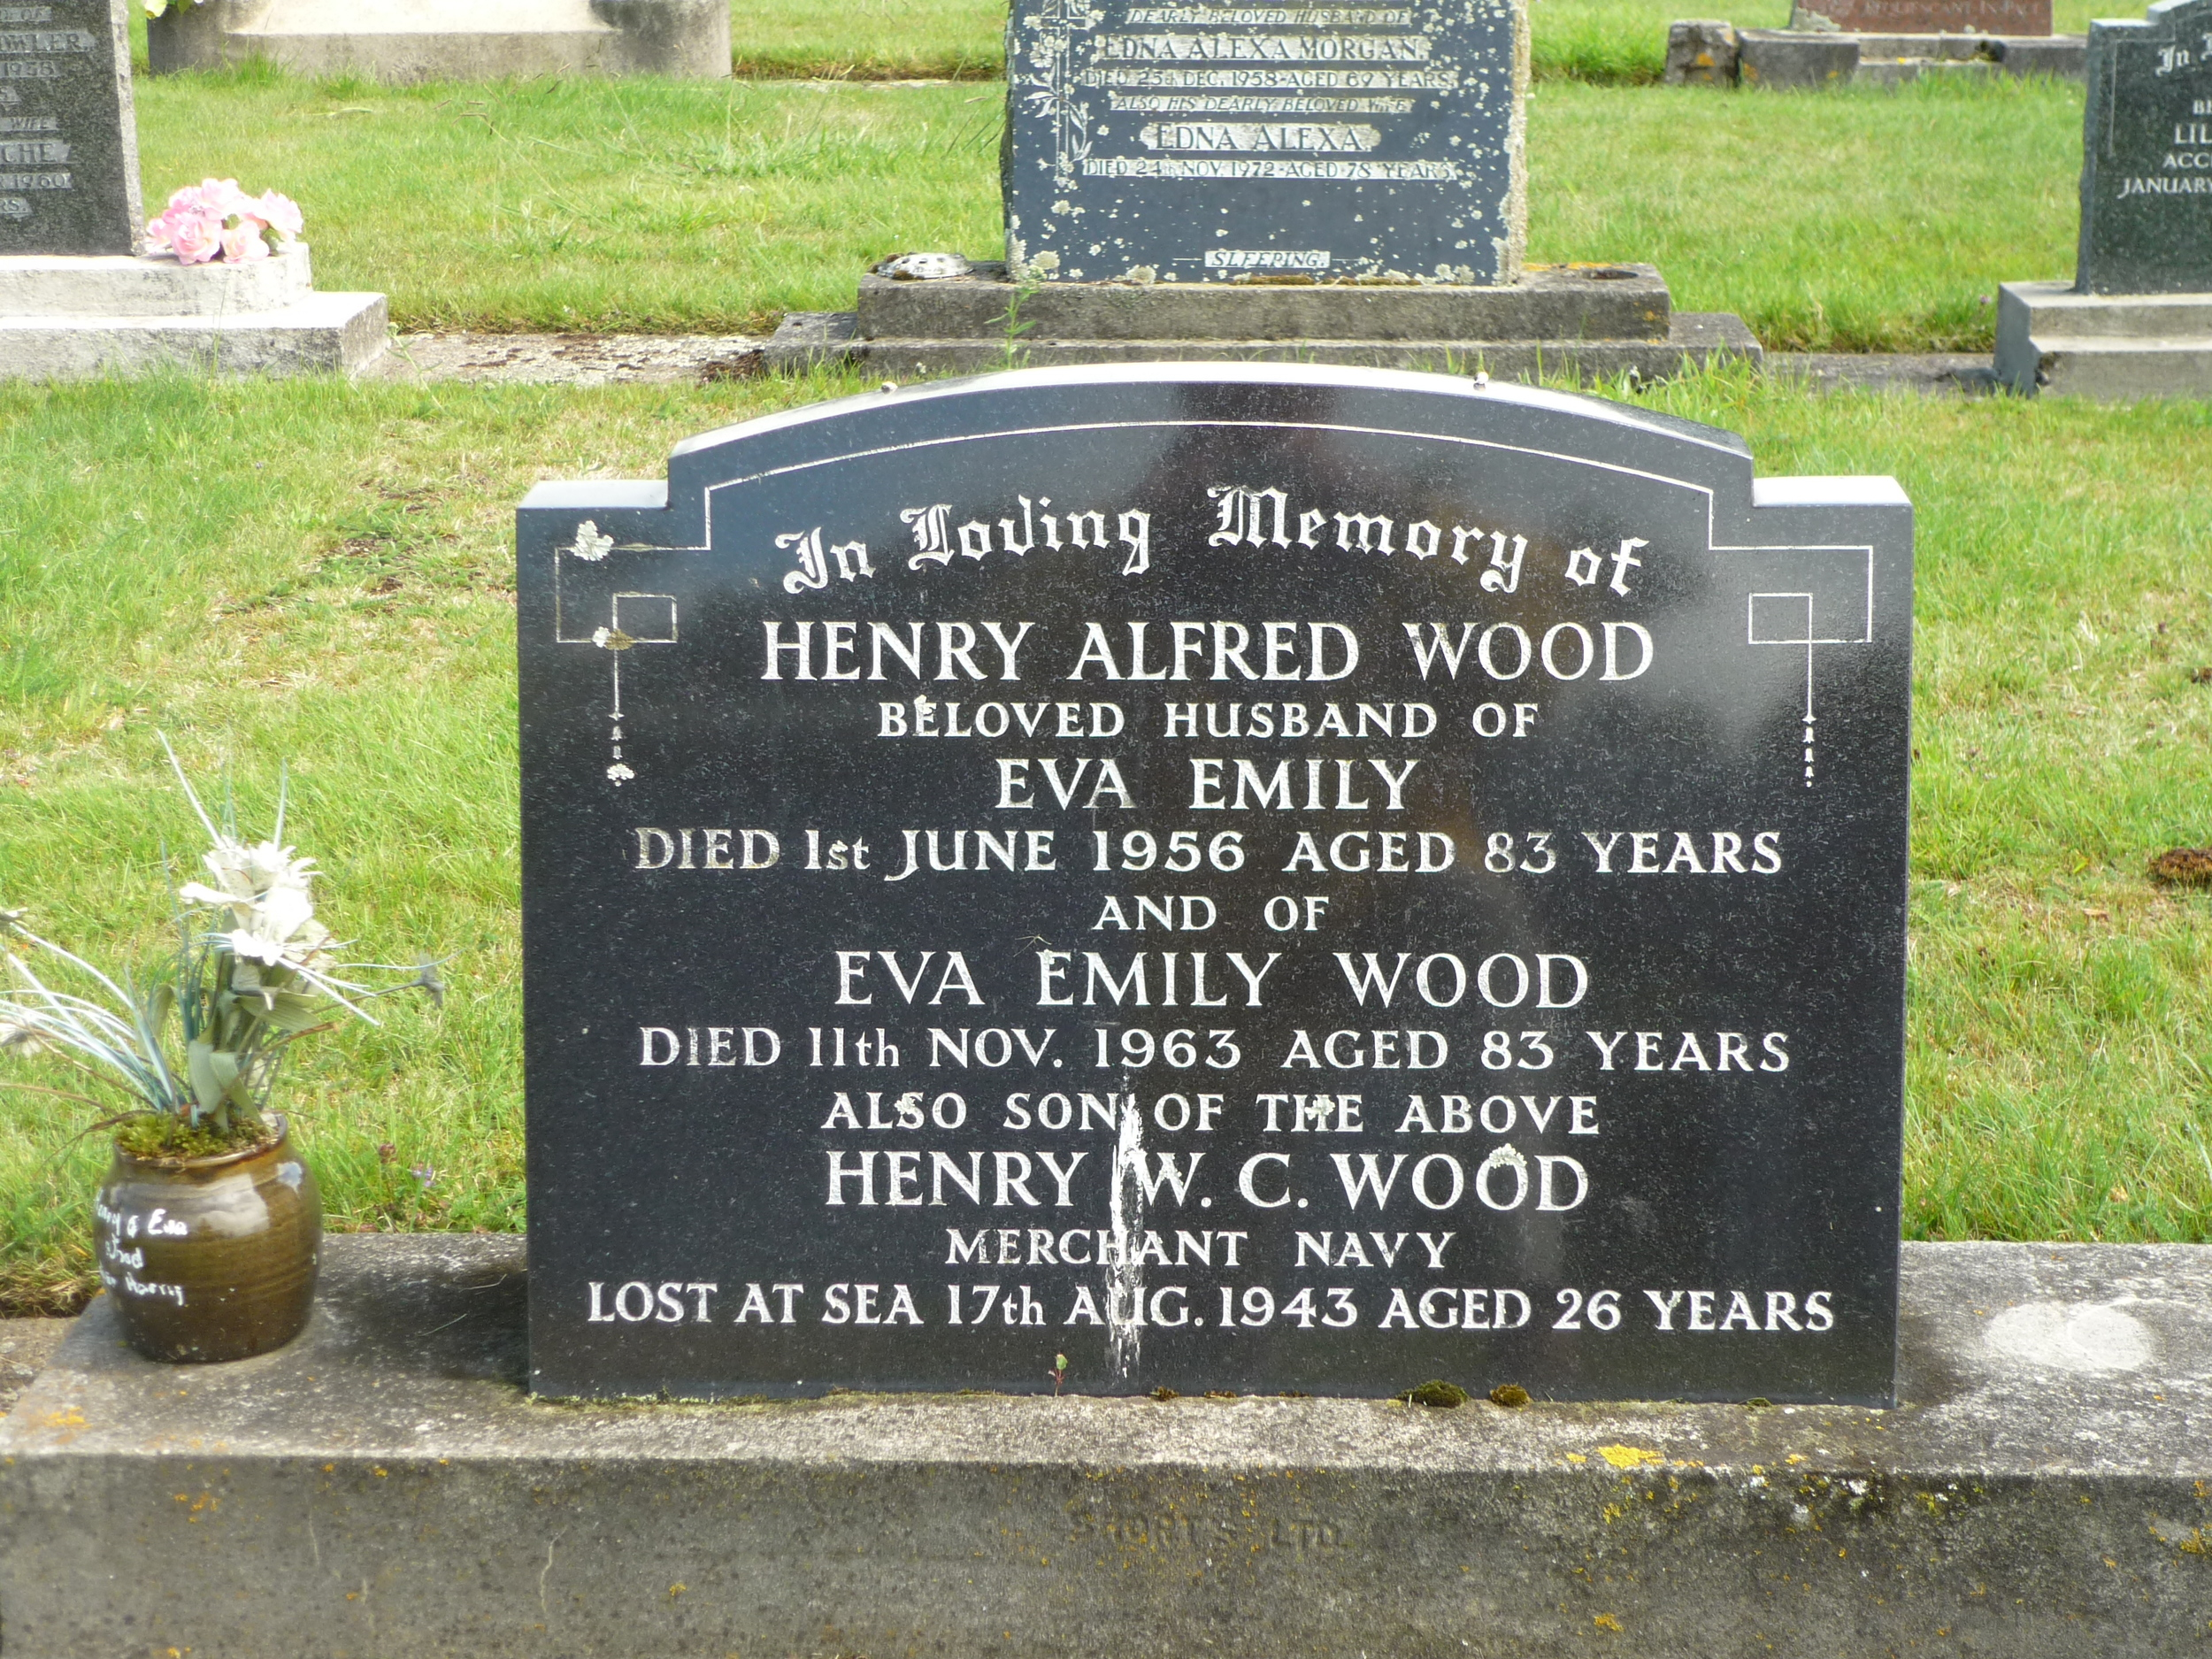 Graves of Henry Alfred and Eva Emily Wood (nee Ford)